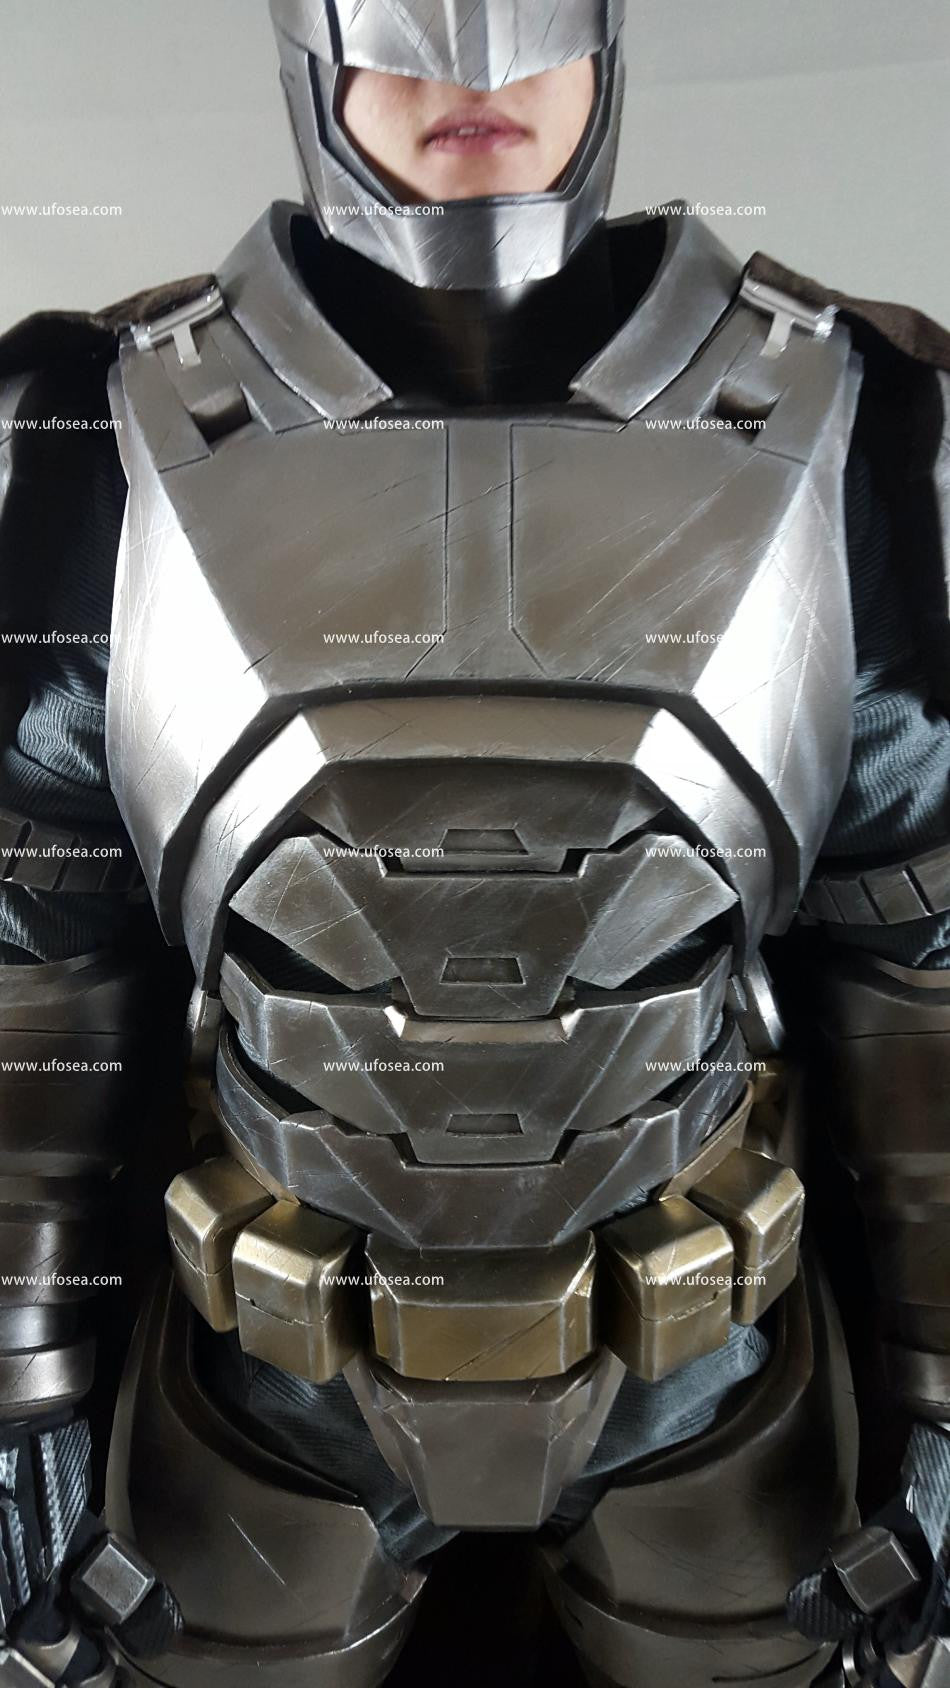 Batman v Superman Dawn of Justice Armor Batman Armor Reloaded Armor High degree of reduction